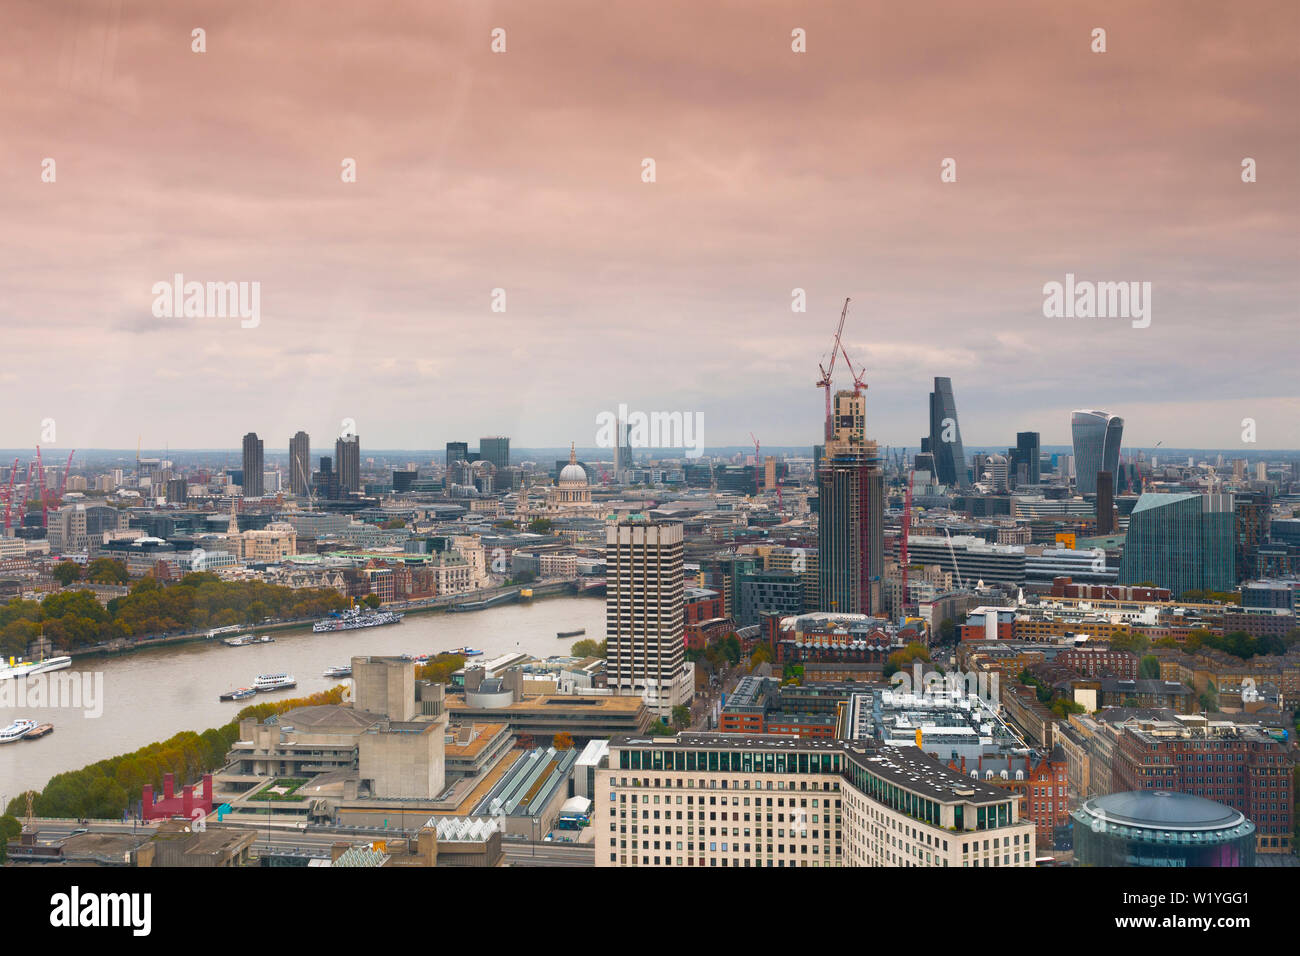 London unusual landscape from ferris wheel - Stock Image